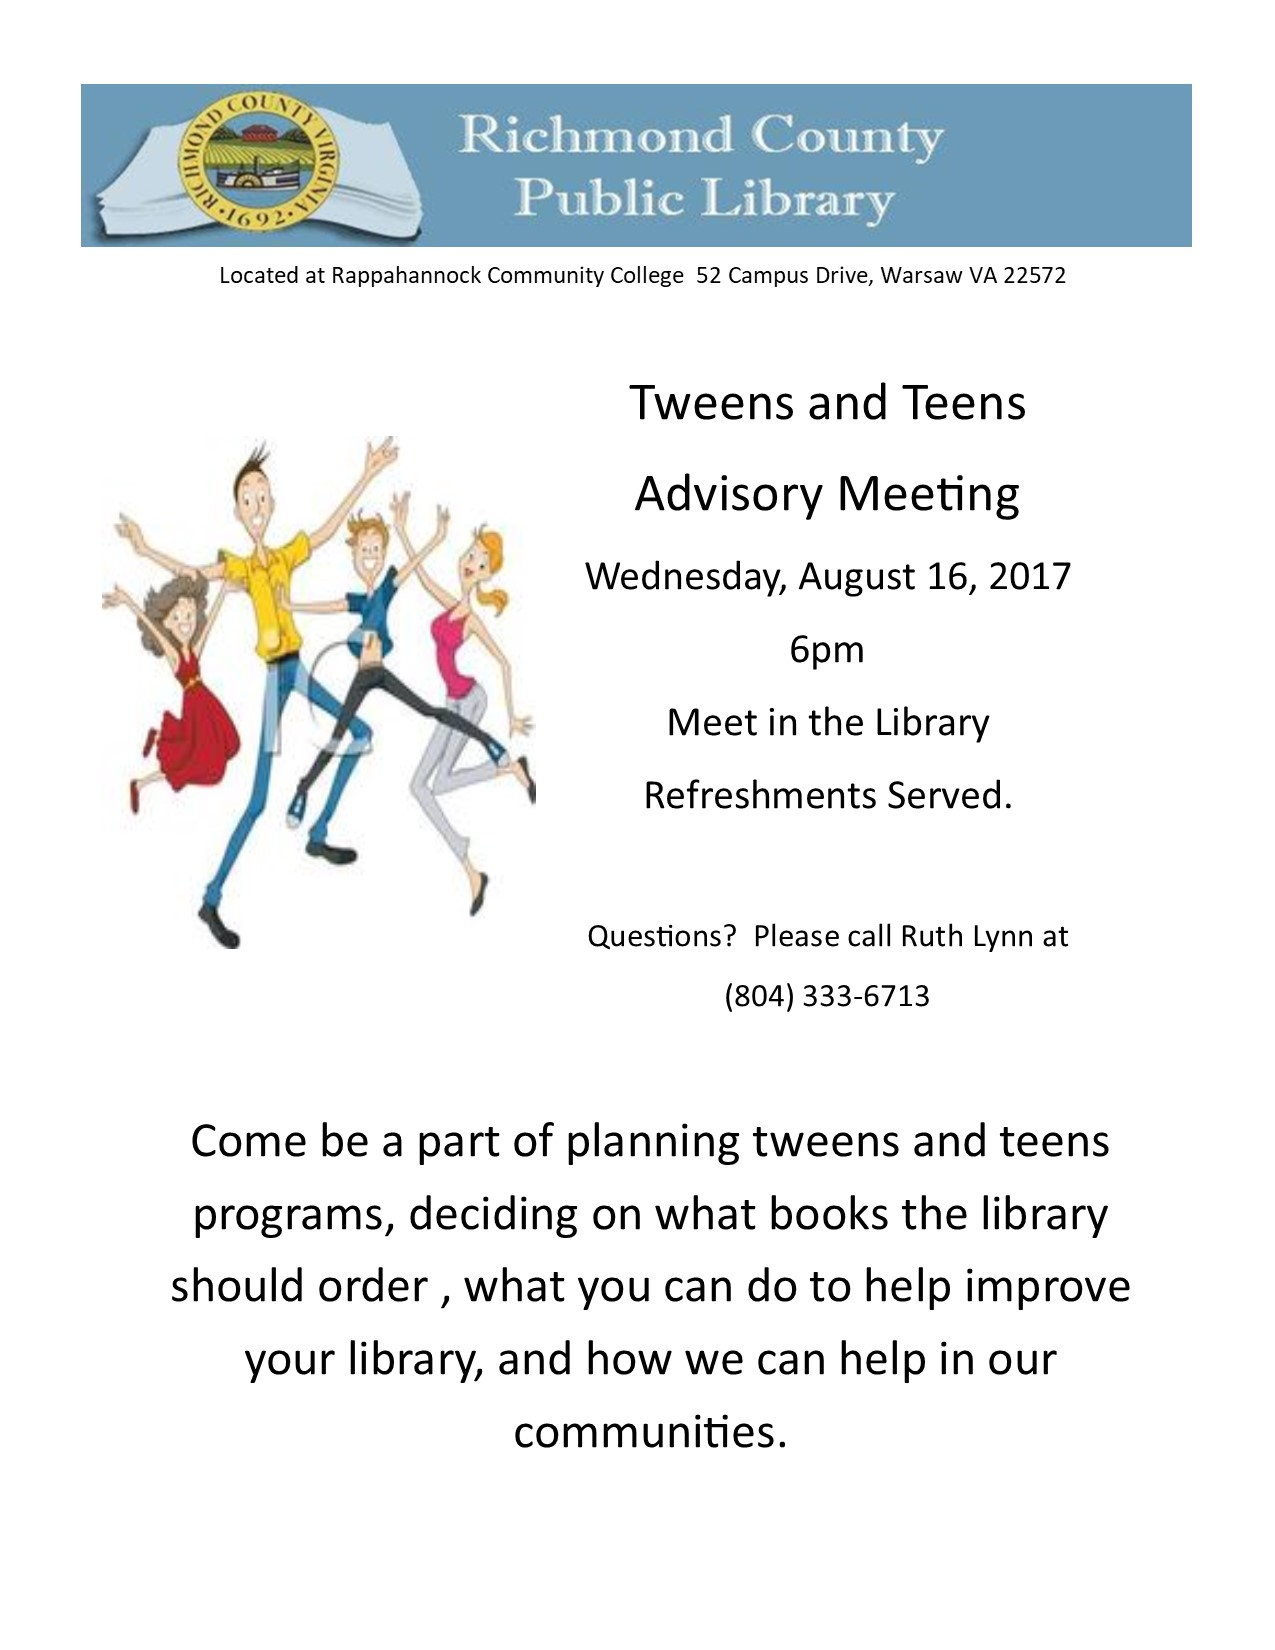 Tweens and Teens  Advisory Meeting @ Richmond County Public Library